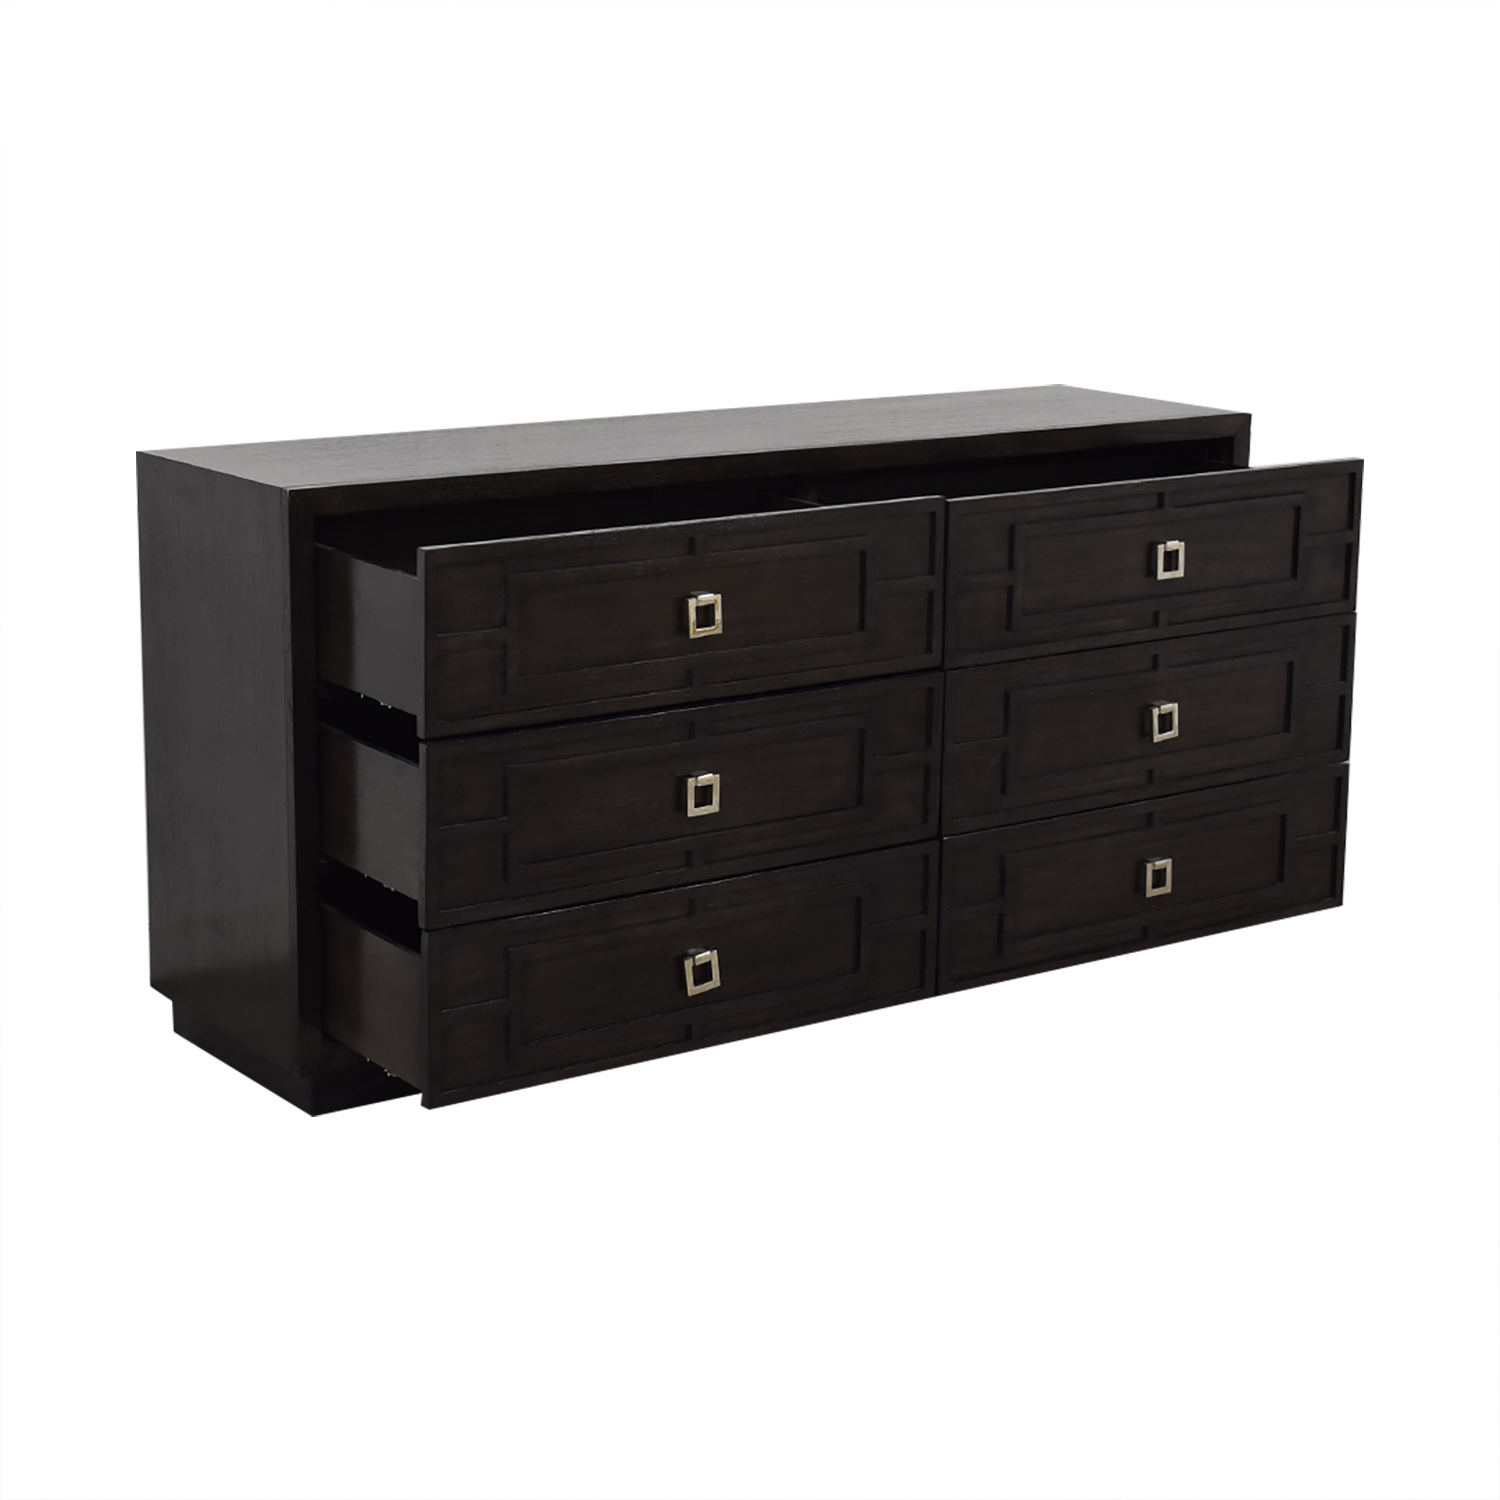 Z Gallerie Z Gallerie Gunnar Six-Drawer Dresser coupon